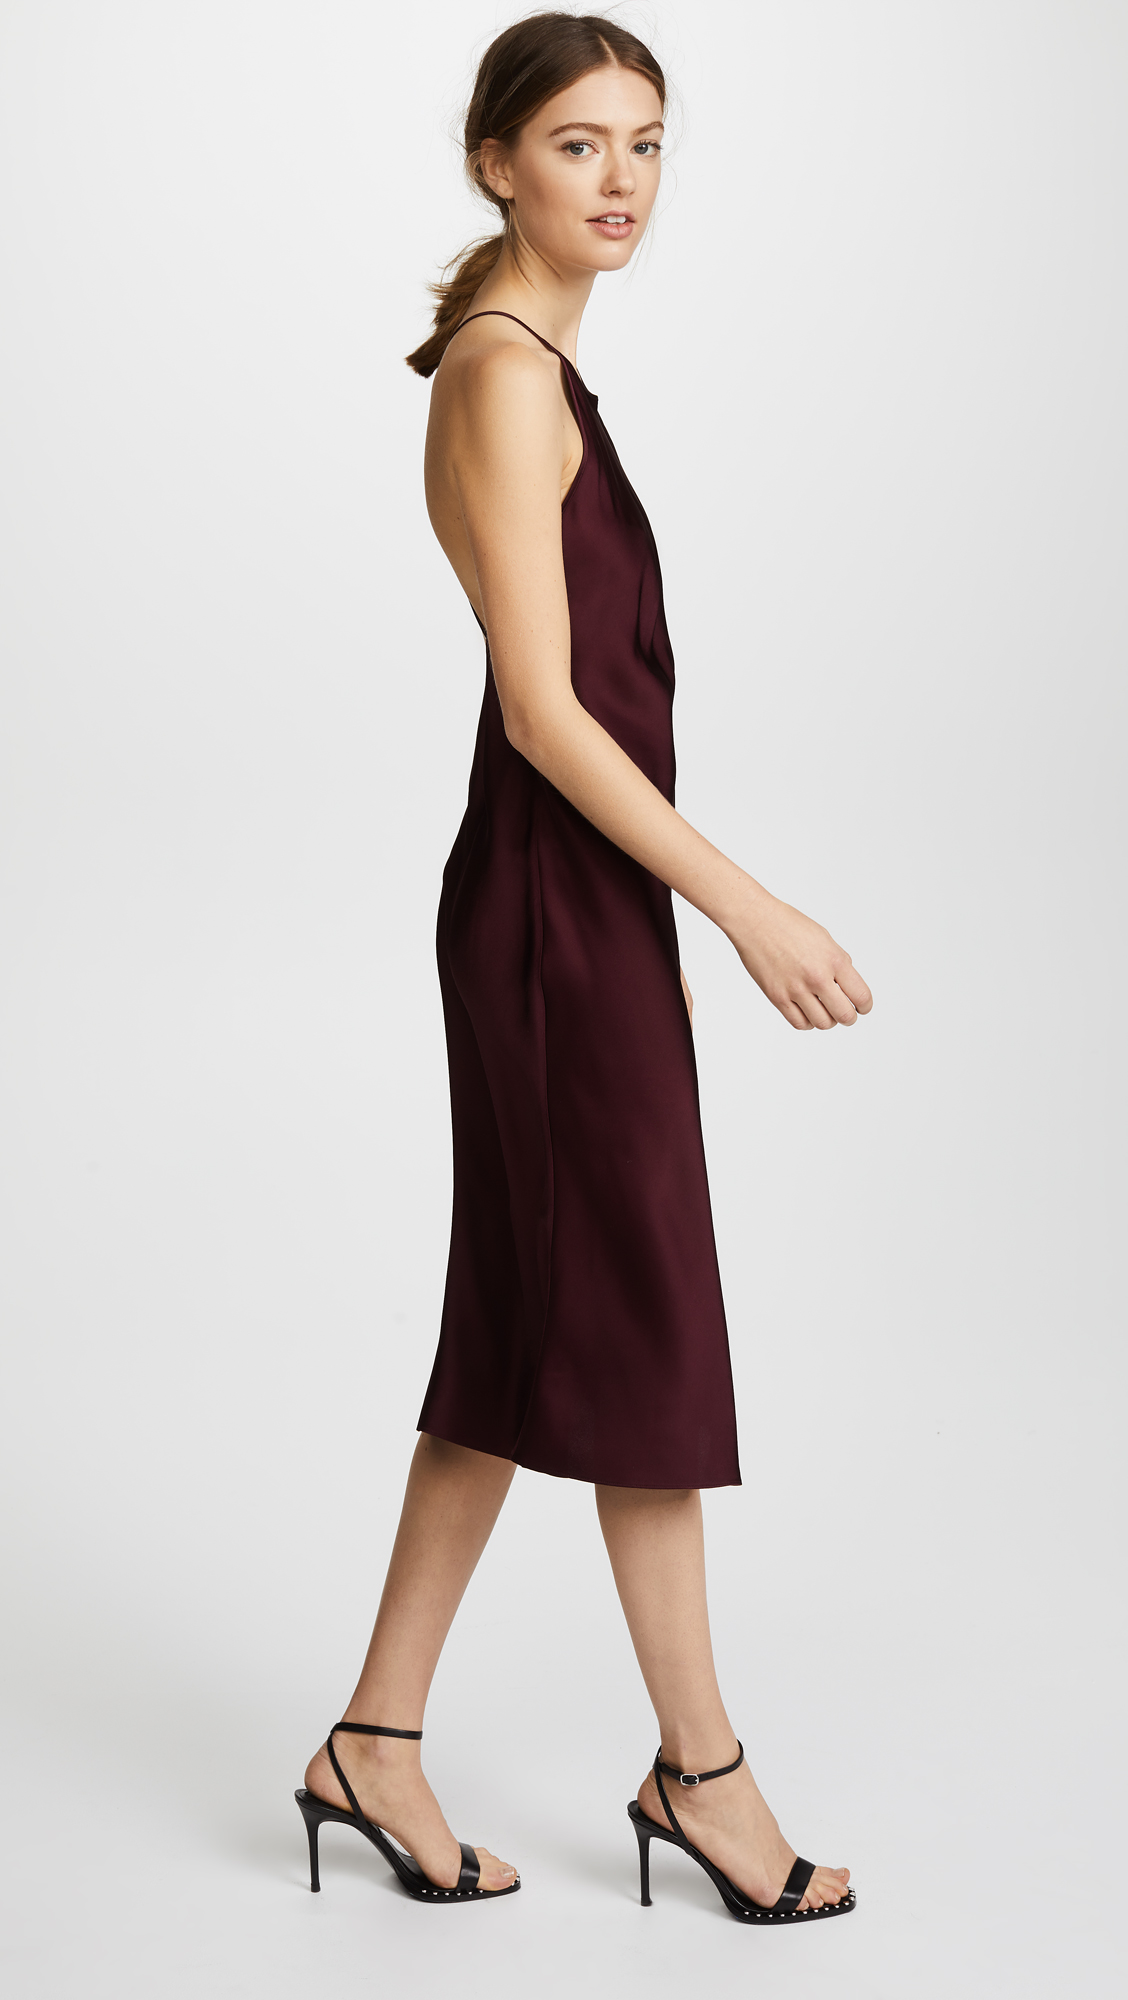 official store new products release info on Protagonist Bias Slip Dress   SHOPBOP